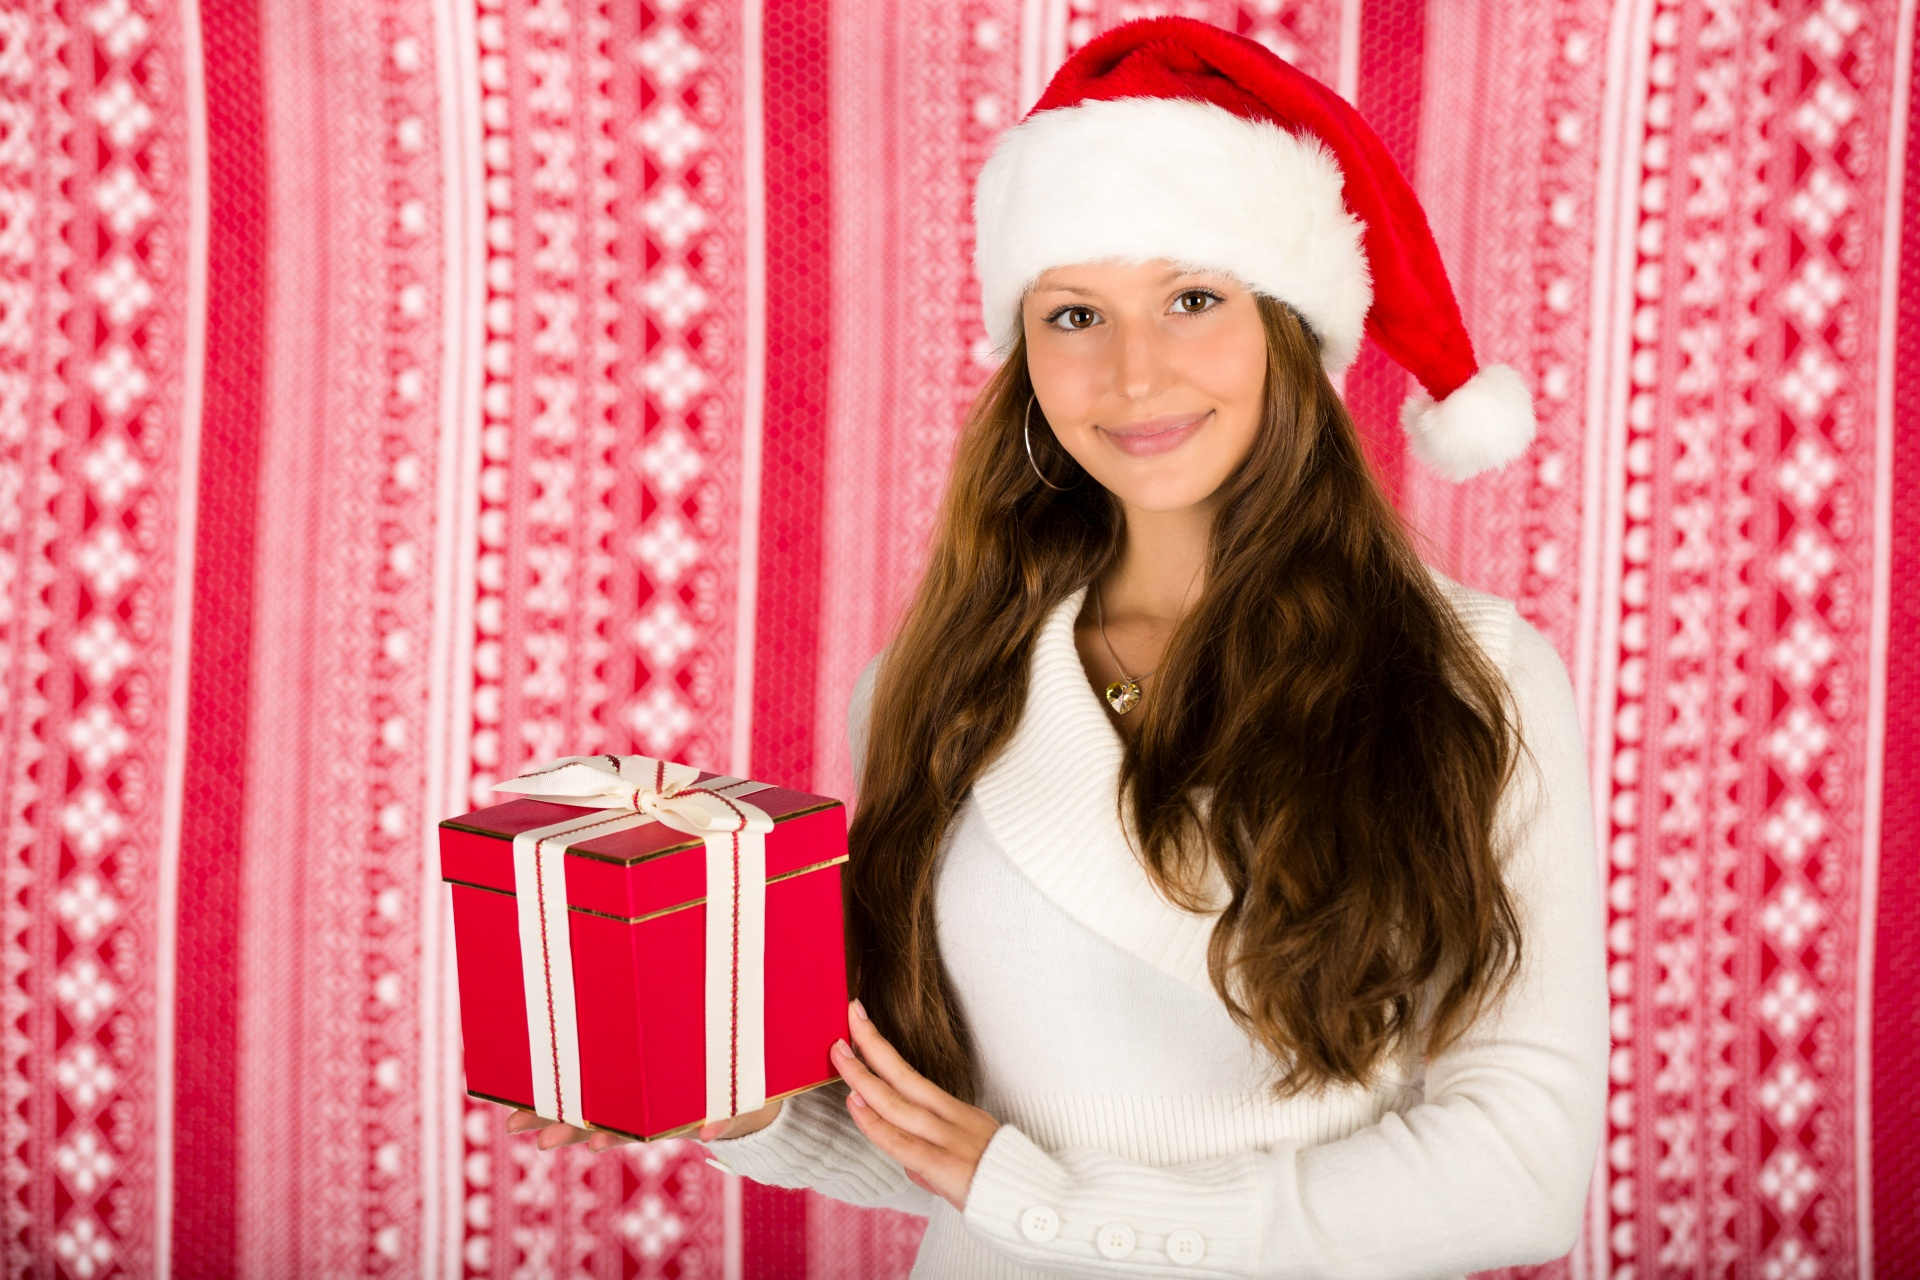 Santa Girl With A Christmas Gift Free Stock Photo - Public Domain ...